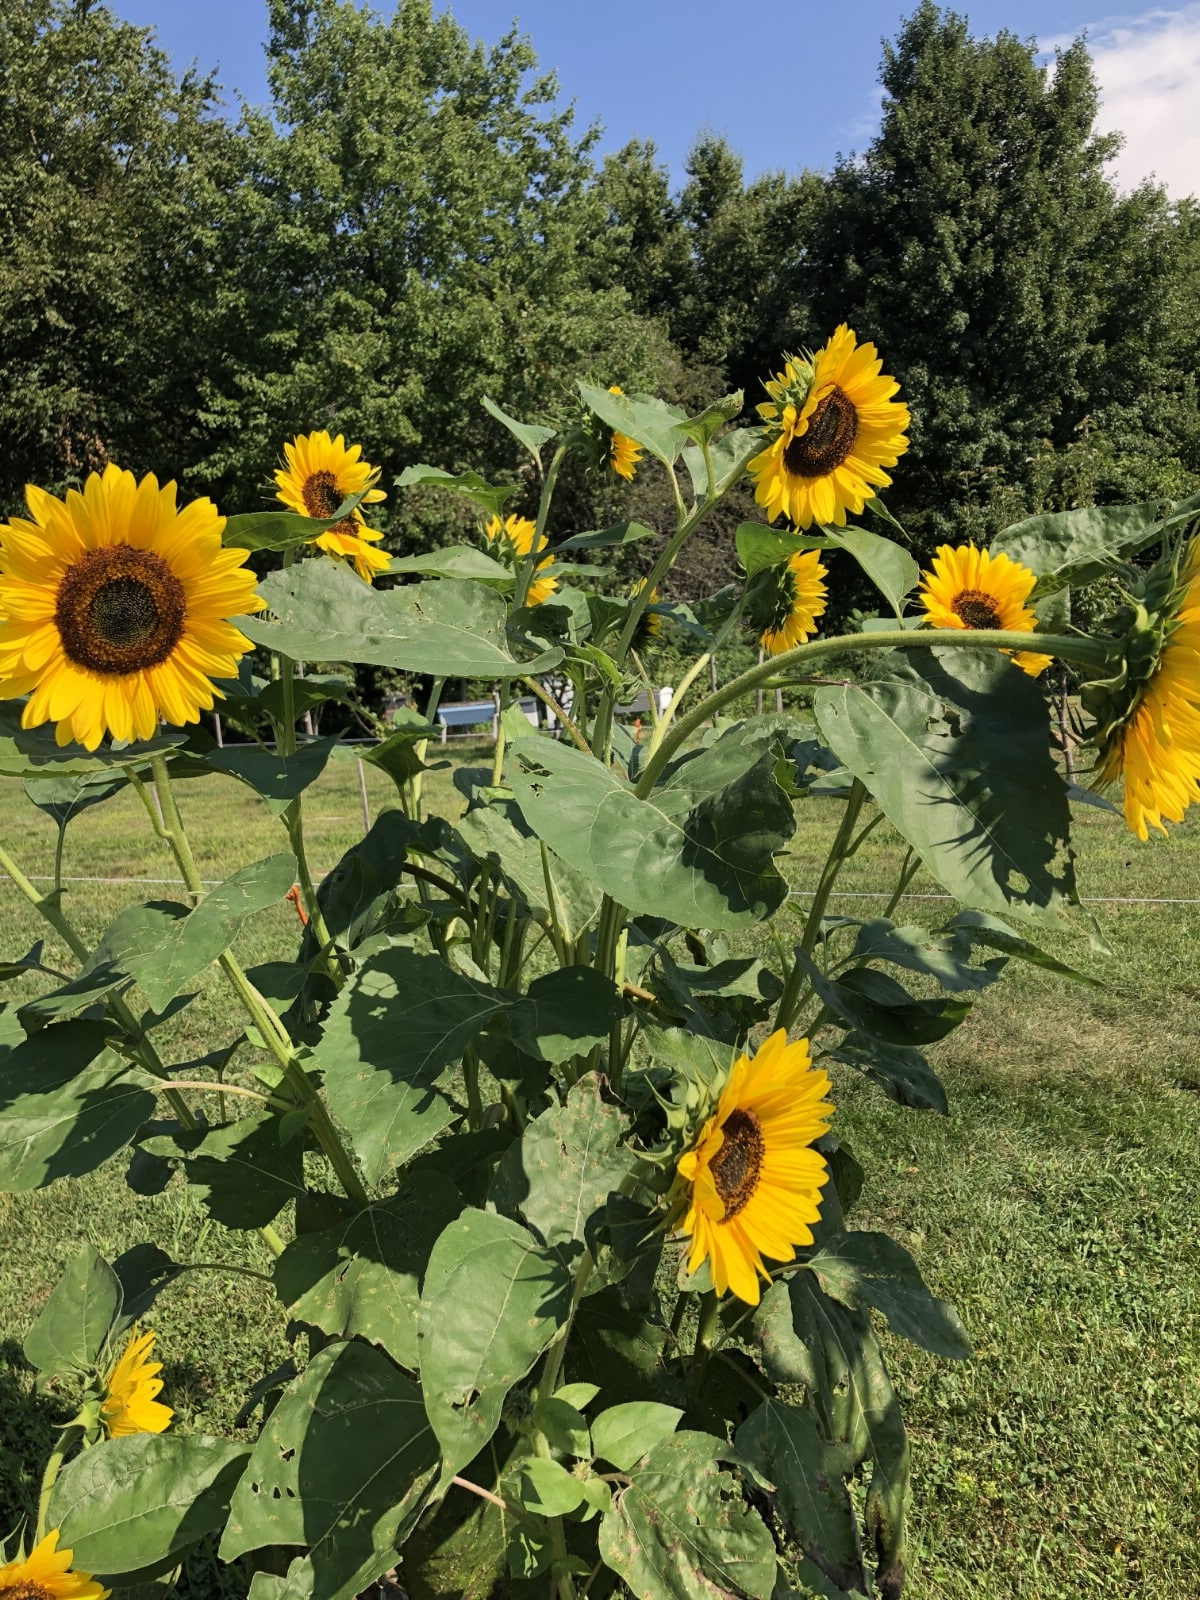 summer sunflowers in a row